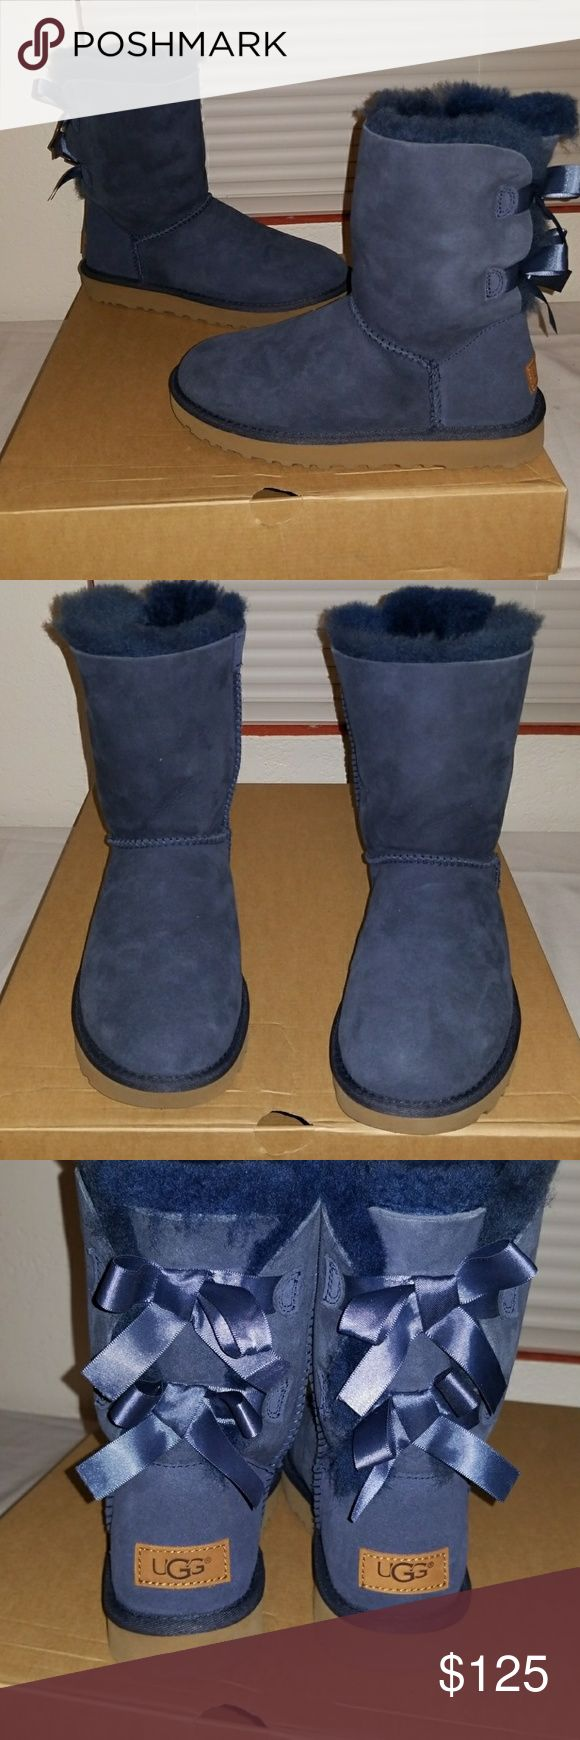 Water resistant Ugg boots model w bailey bow II color navy water resistant does not come with the original box UGG Shoes Winter & Rain Boots